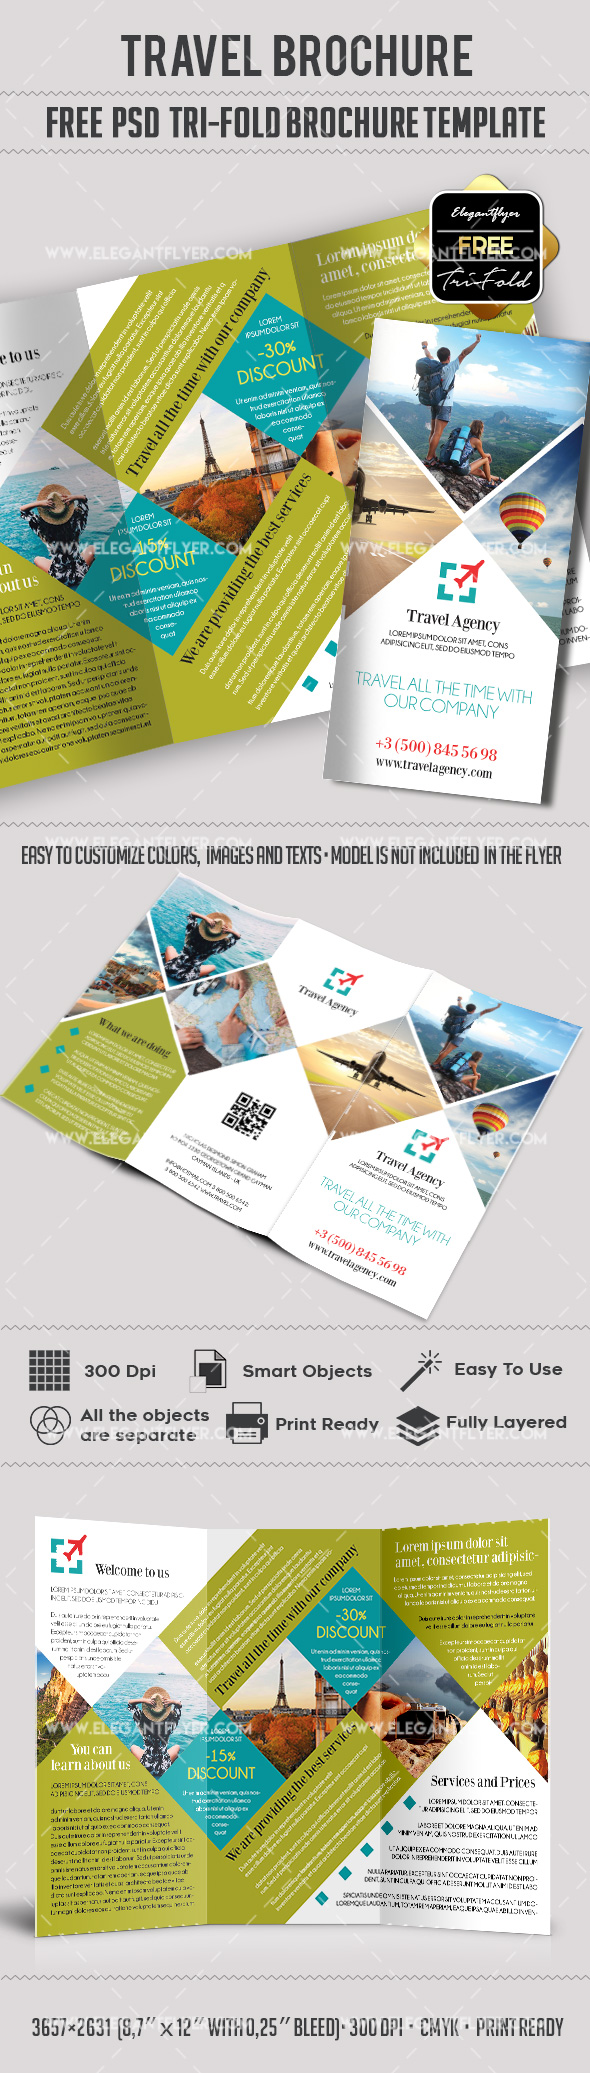 travel brochure template free - travel free psd tri fold psd brochure template by